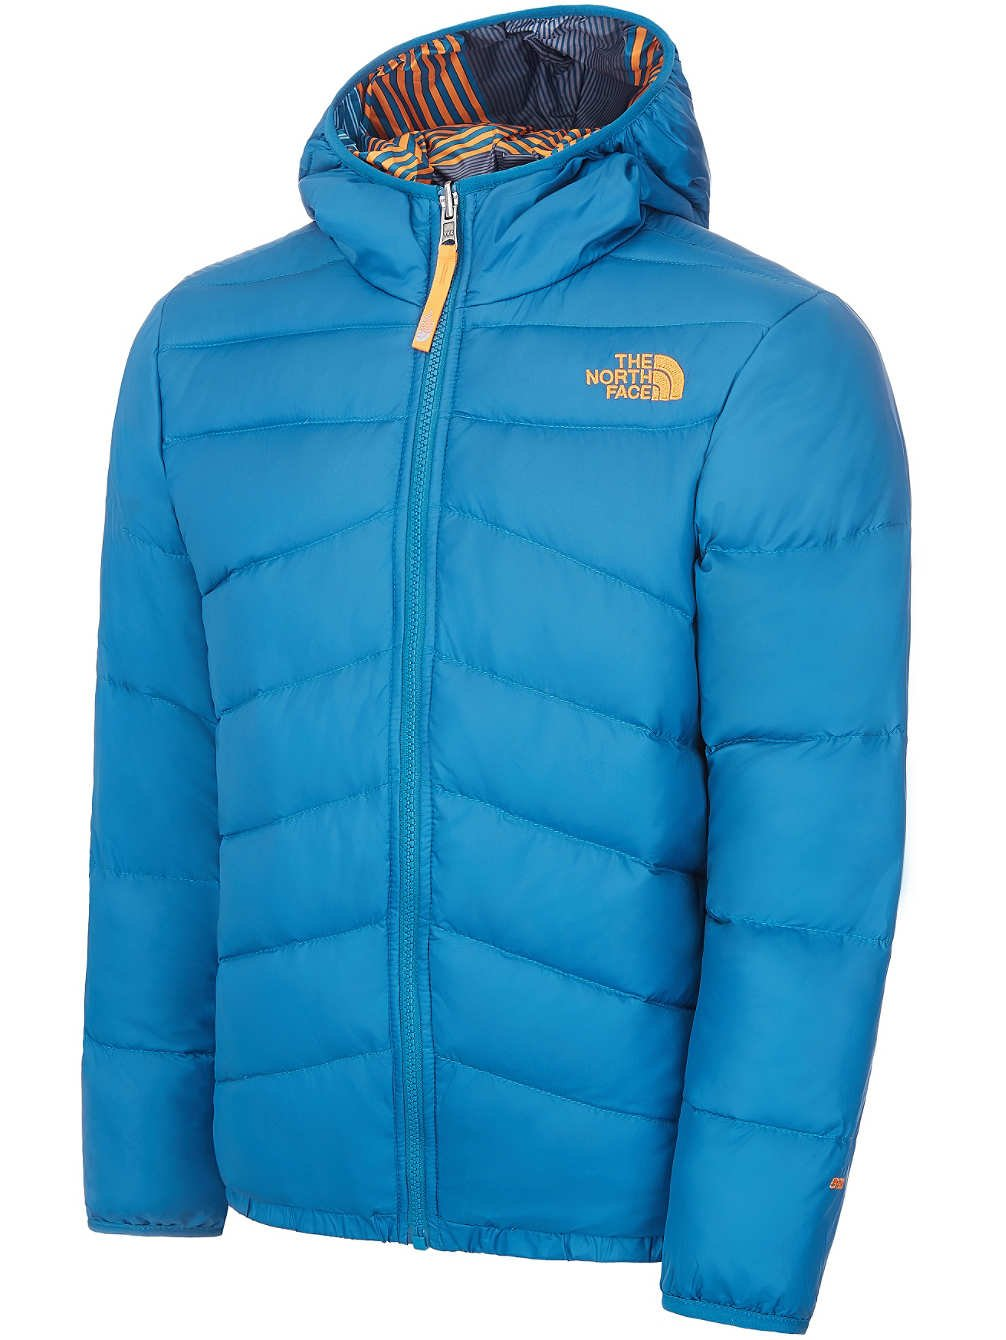 The North Face Boy'Doggy Jacke Moon s jetzt kaufen